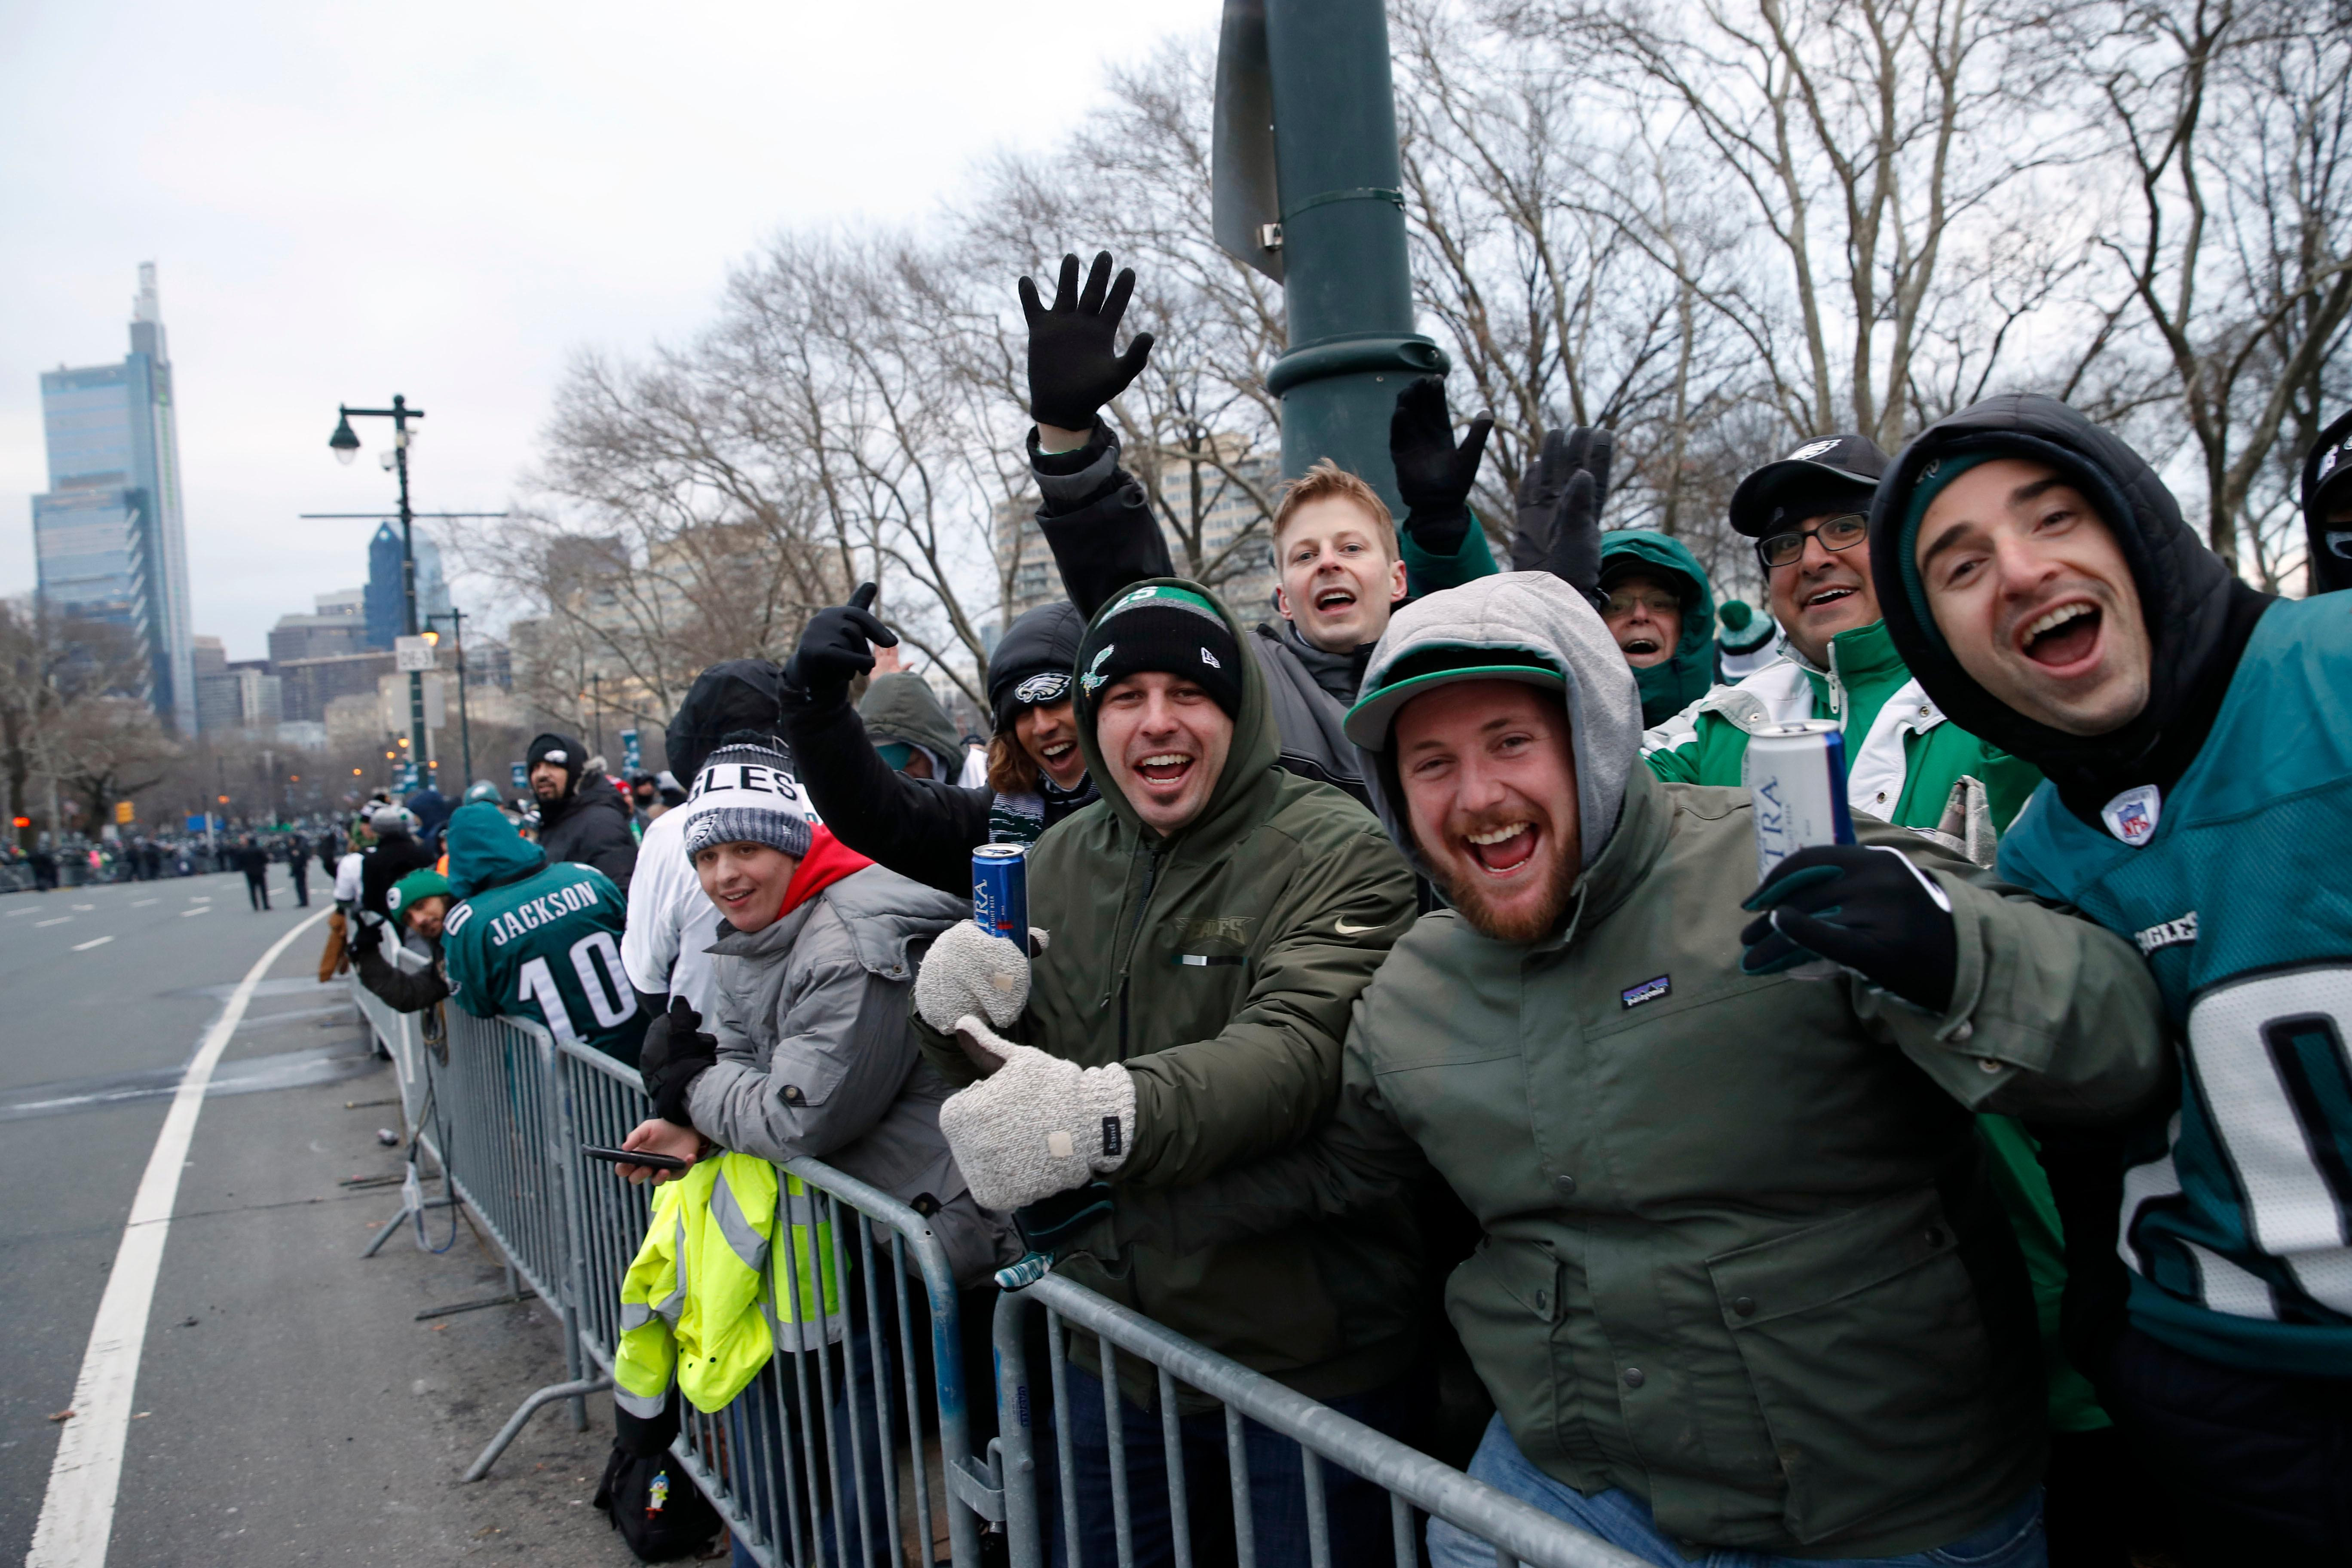 Fans line Benjamin Franklin Parkway before a Super Bowl victory parade for the Philadelphia Eagles NFL football team, Thursday, Feb. 8, 2018, in Philadelphia. The Eagles beat the New England Patriots 41-33 in Super Bowl 52. (AP Photo/Alex Brandon)